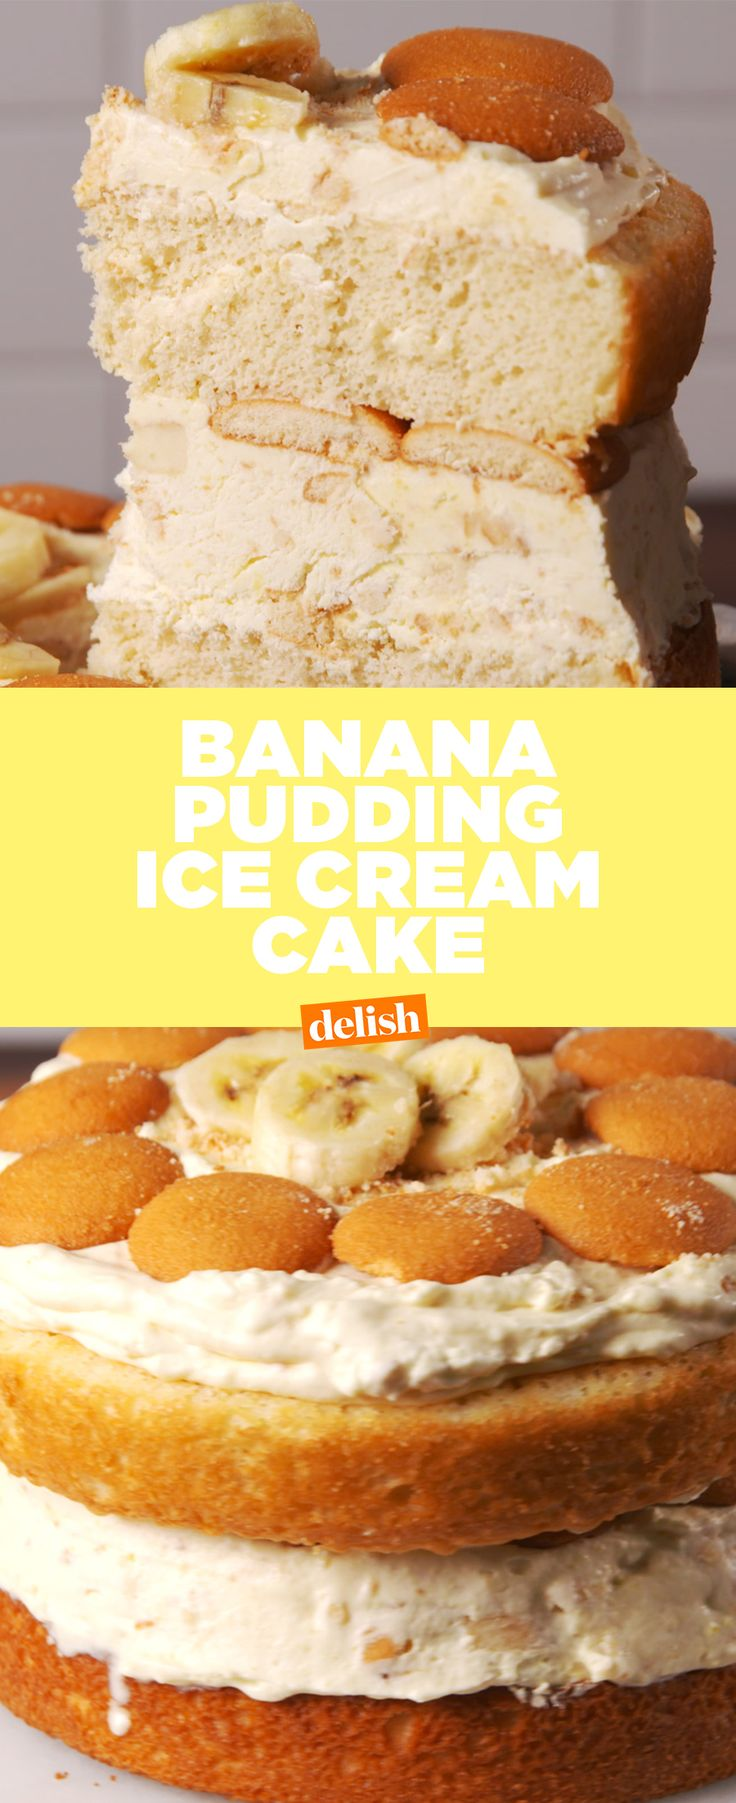 If you love banana pudding, you'll go ape sh*t over this cake. Get the recipe at Delish.com.